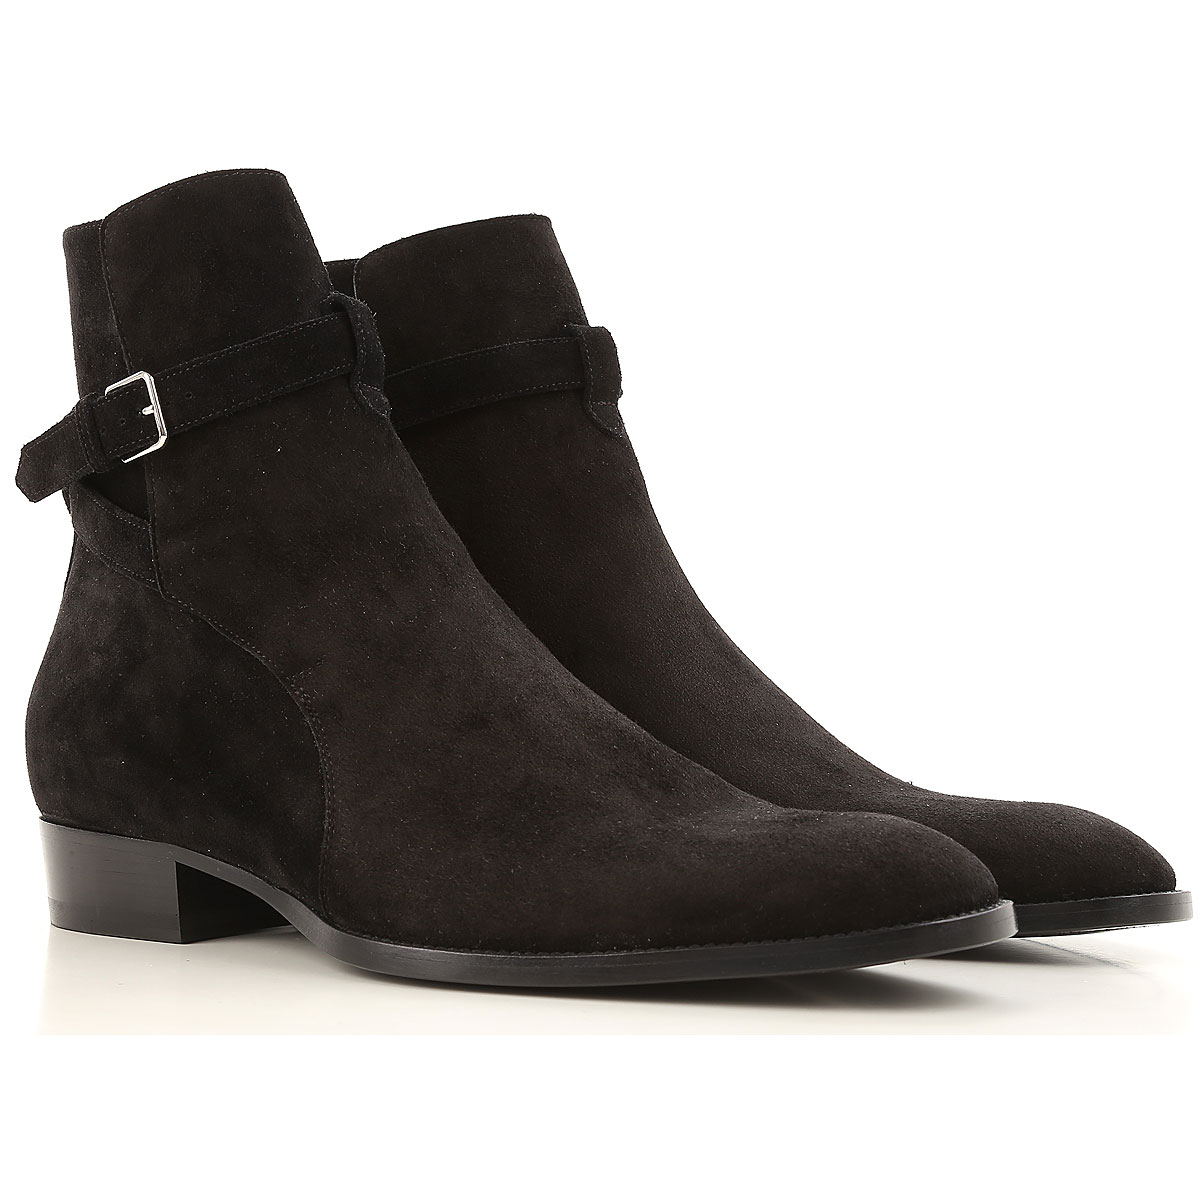 Yves Saint Laurent Boots for Men, Booties On Sale, Black, Suede leather, 2019, 10 10.5 8.5 9.5